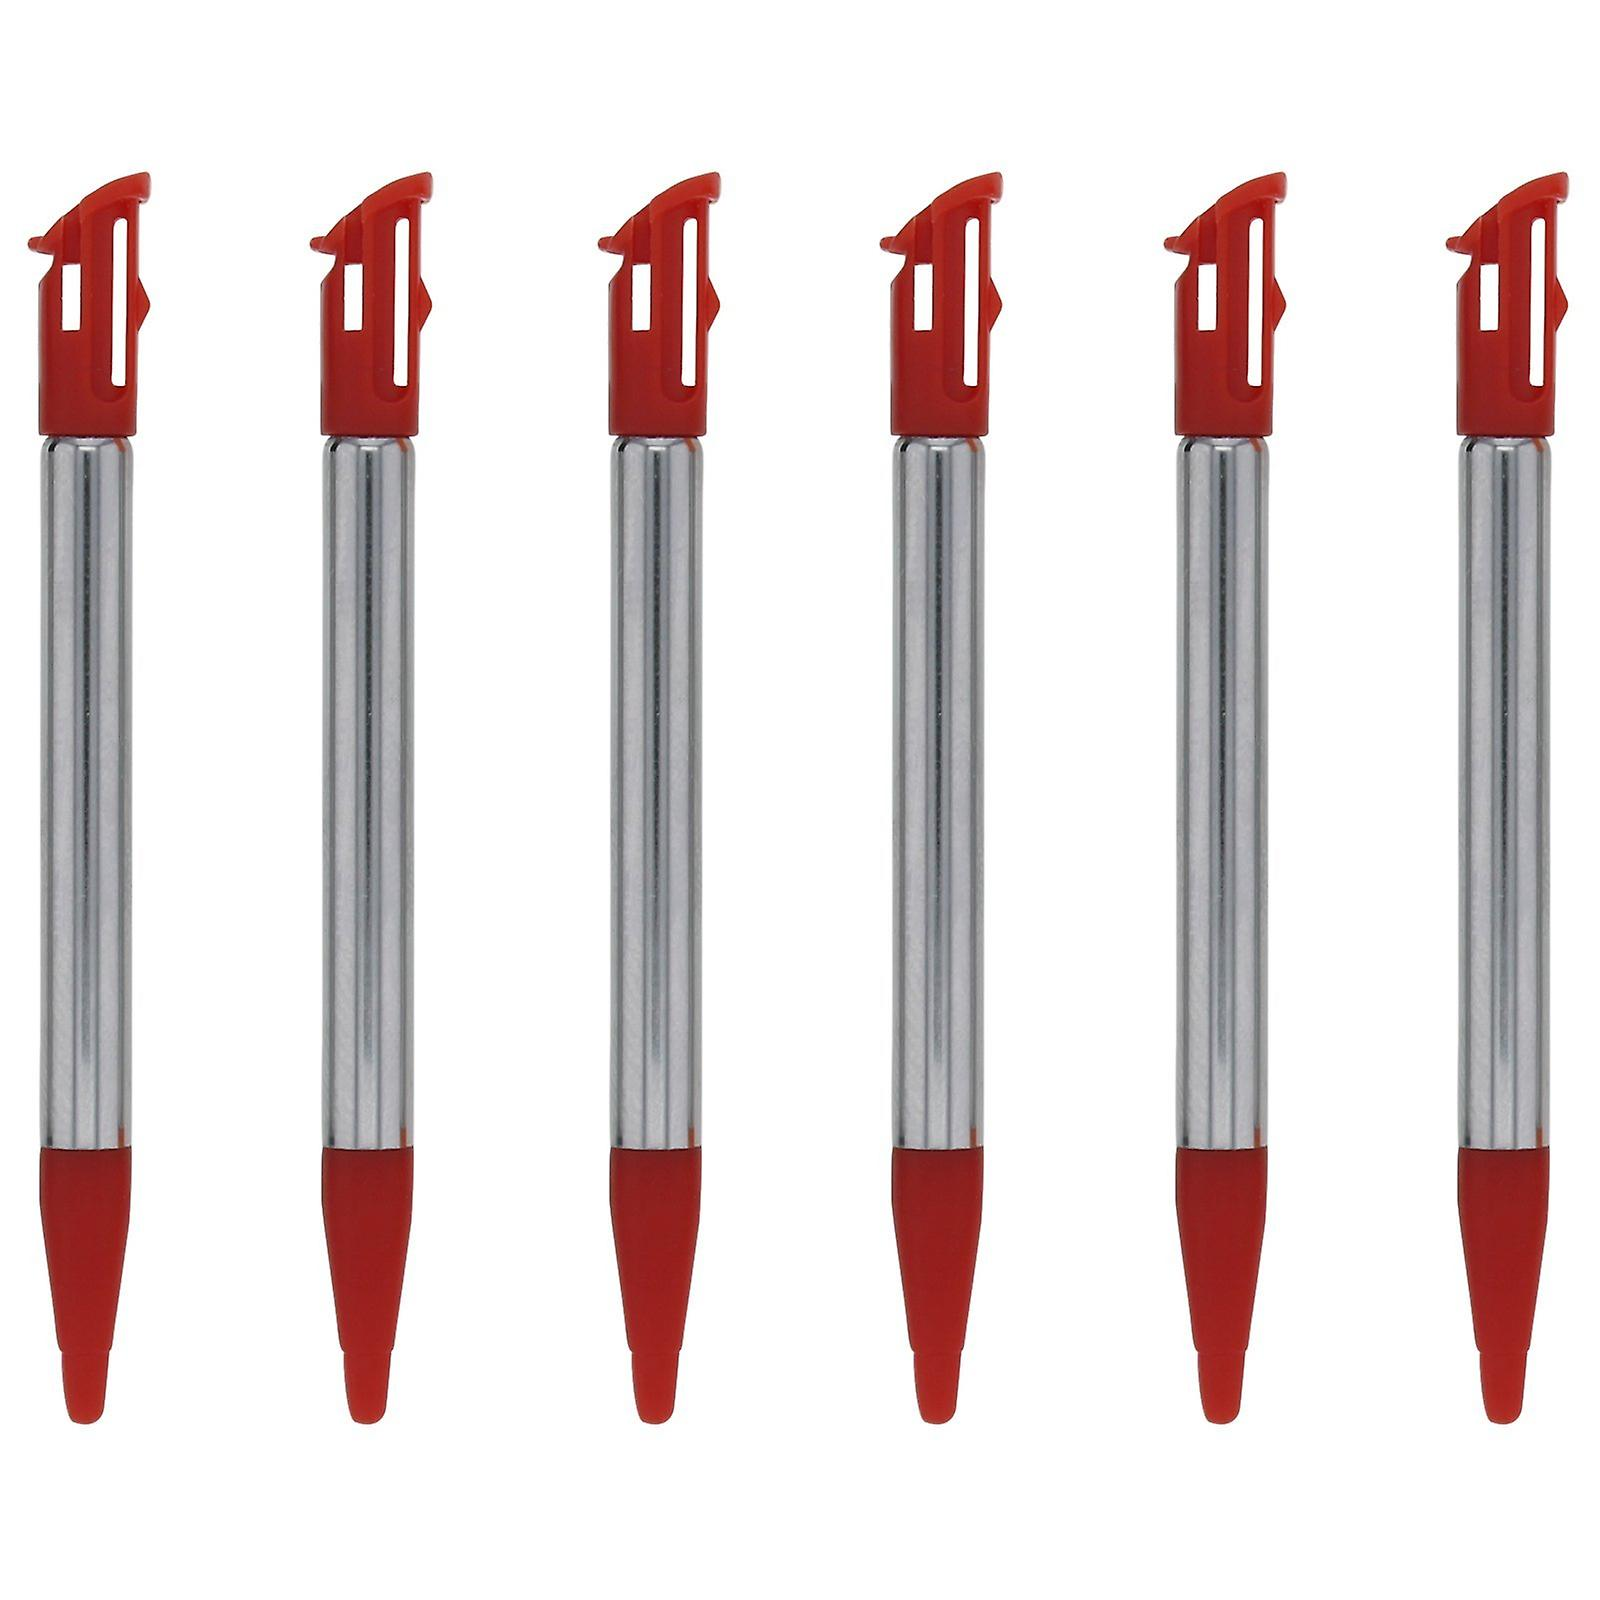 Replacement slot in metal extendable stylus pens for nintendo 2ds xl - 6 pack red